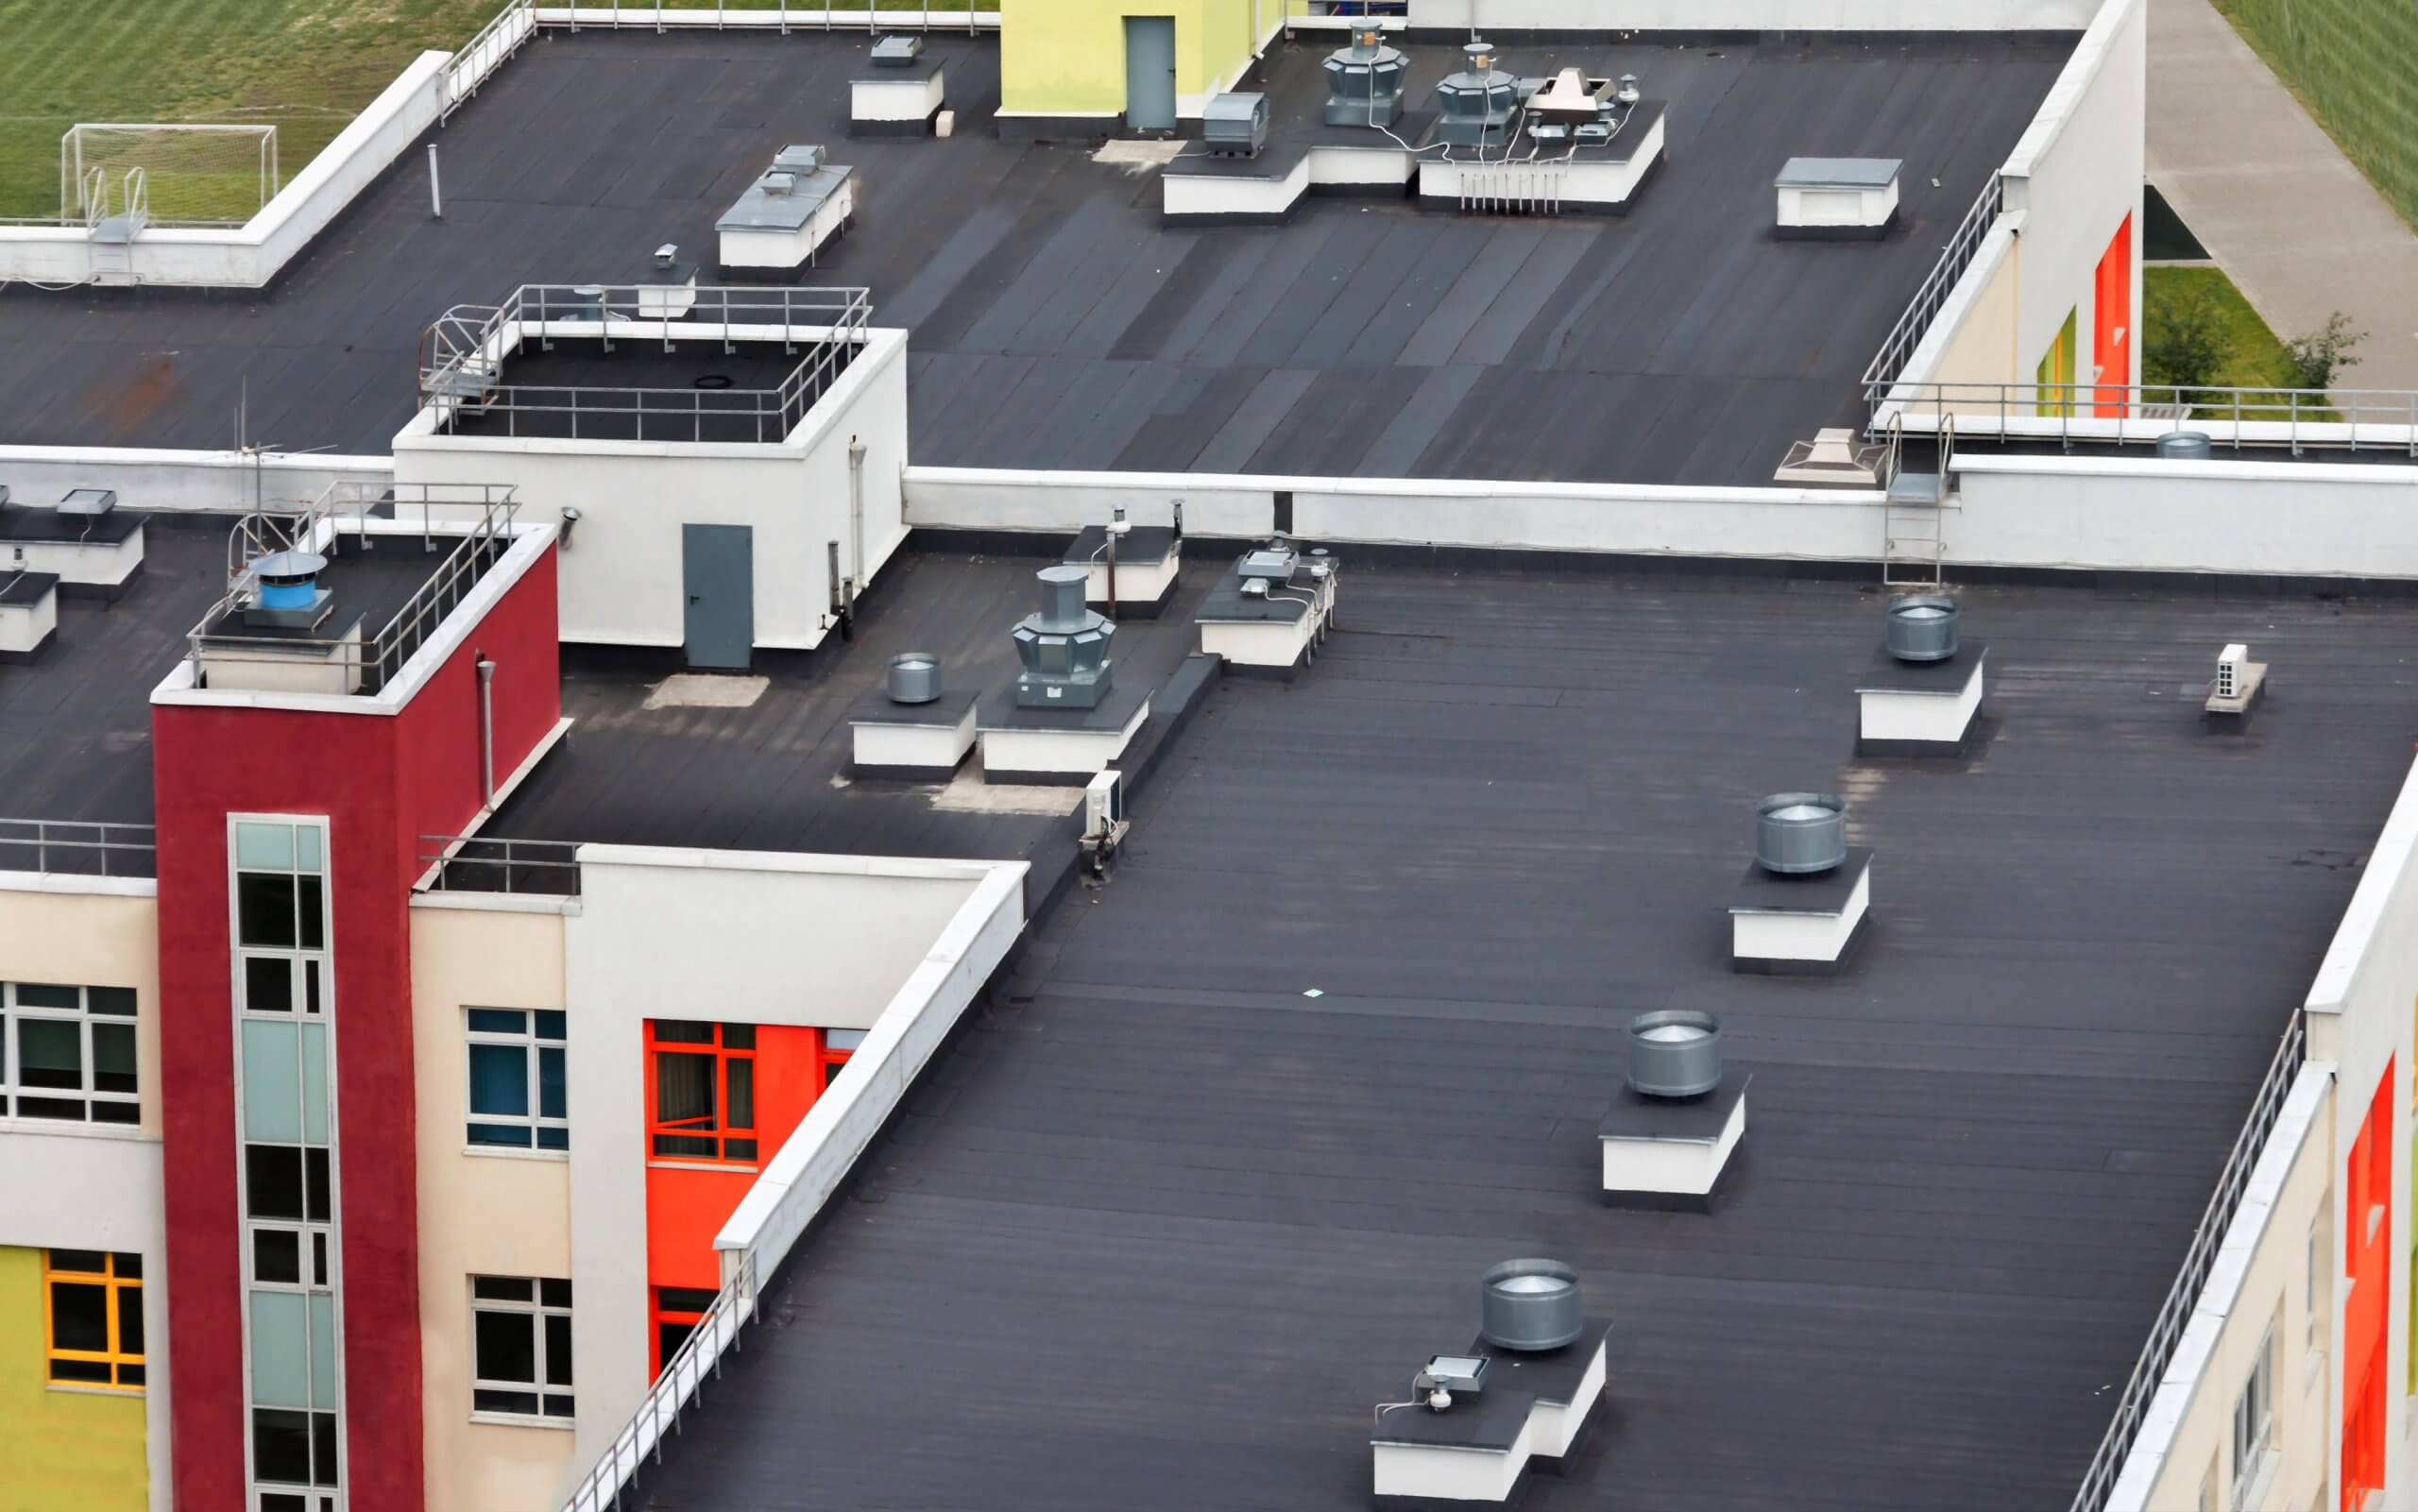 View of Rubber Roof